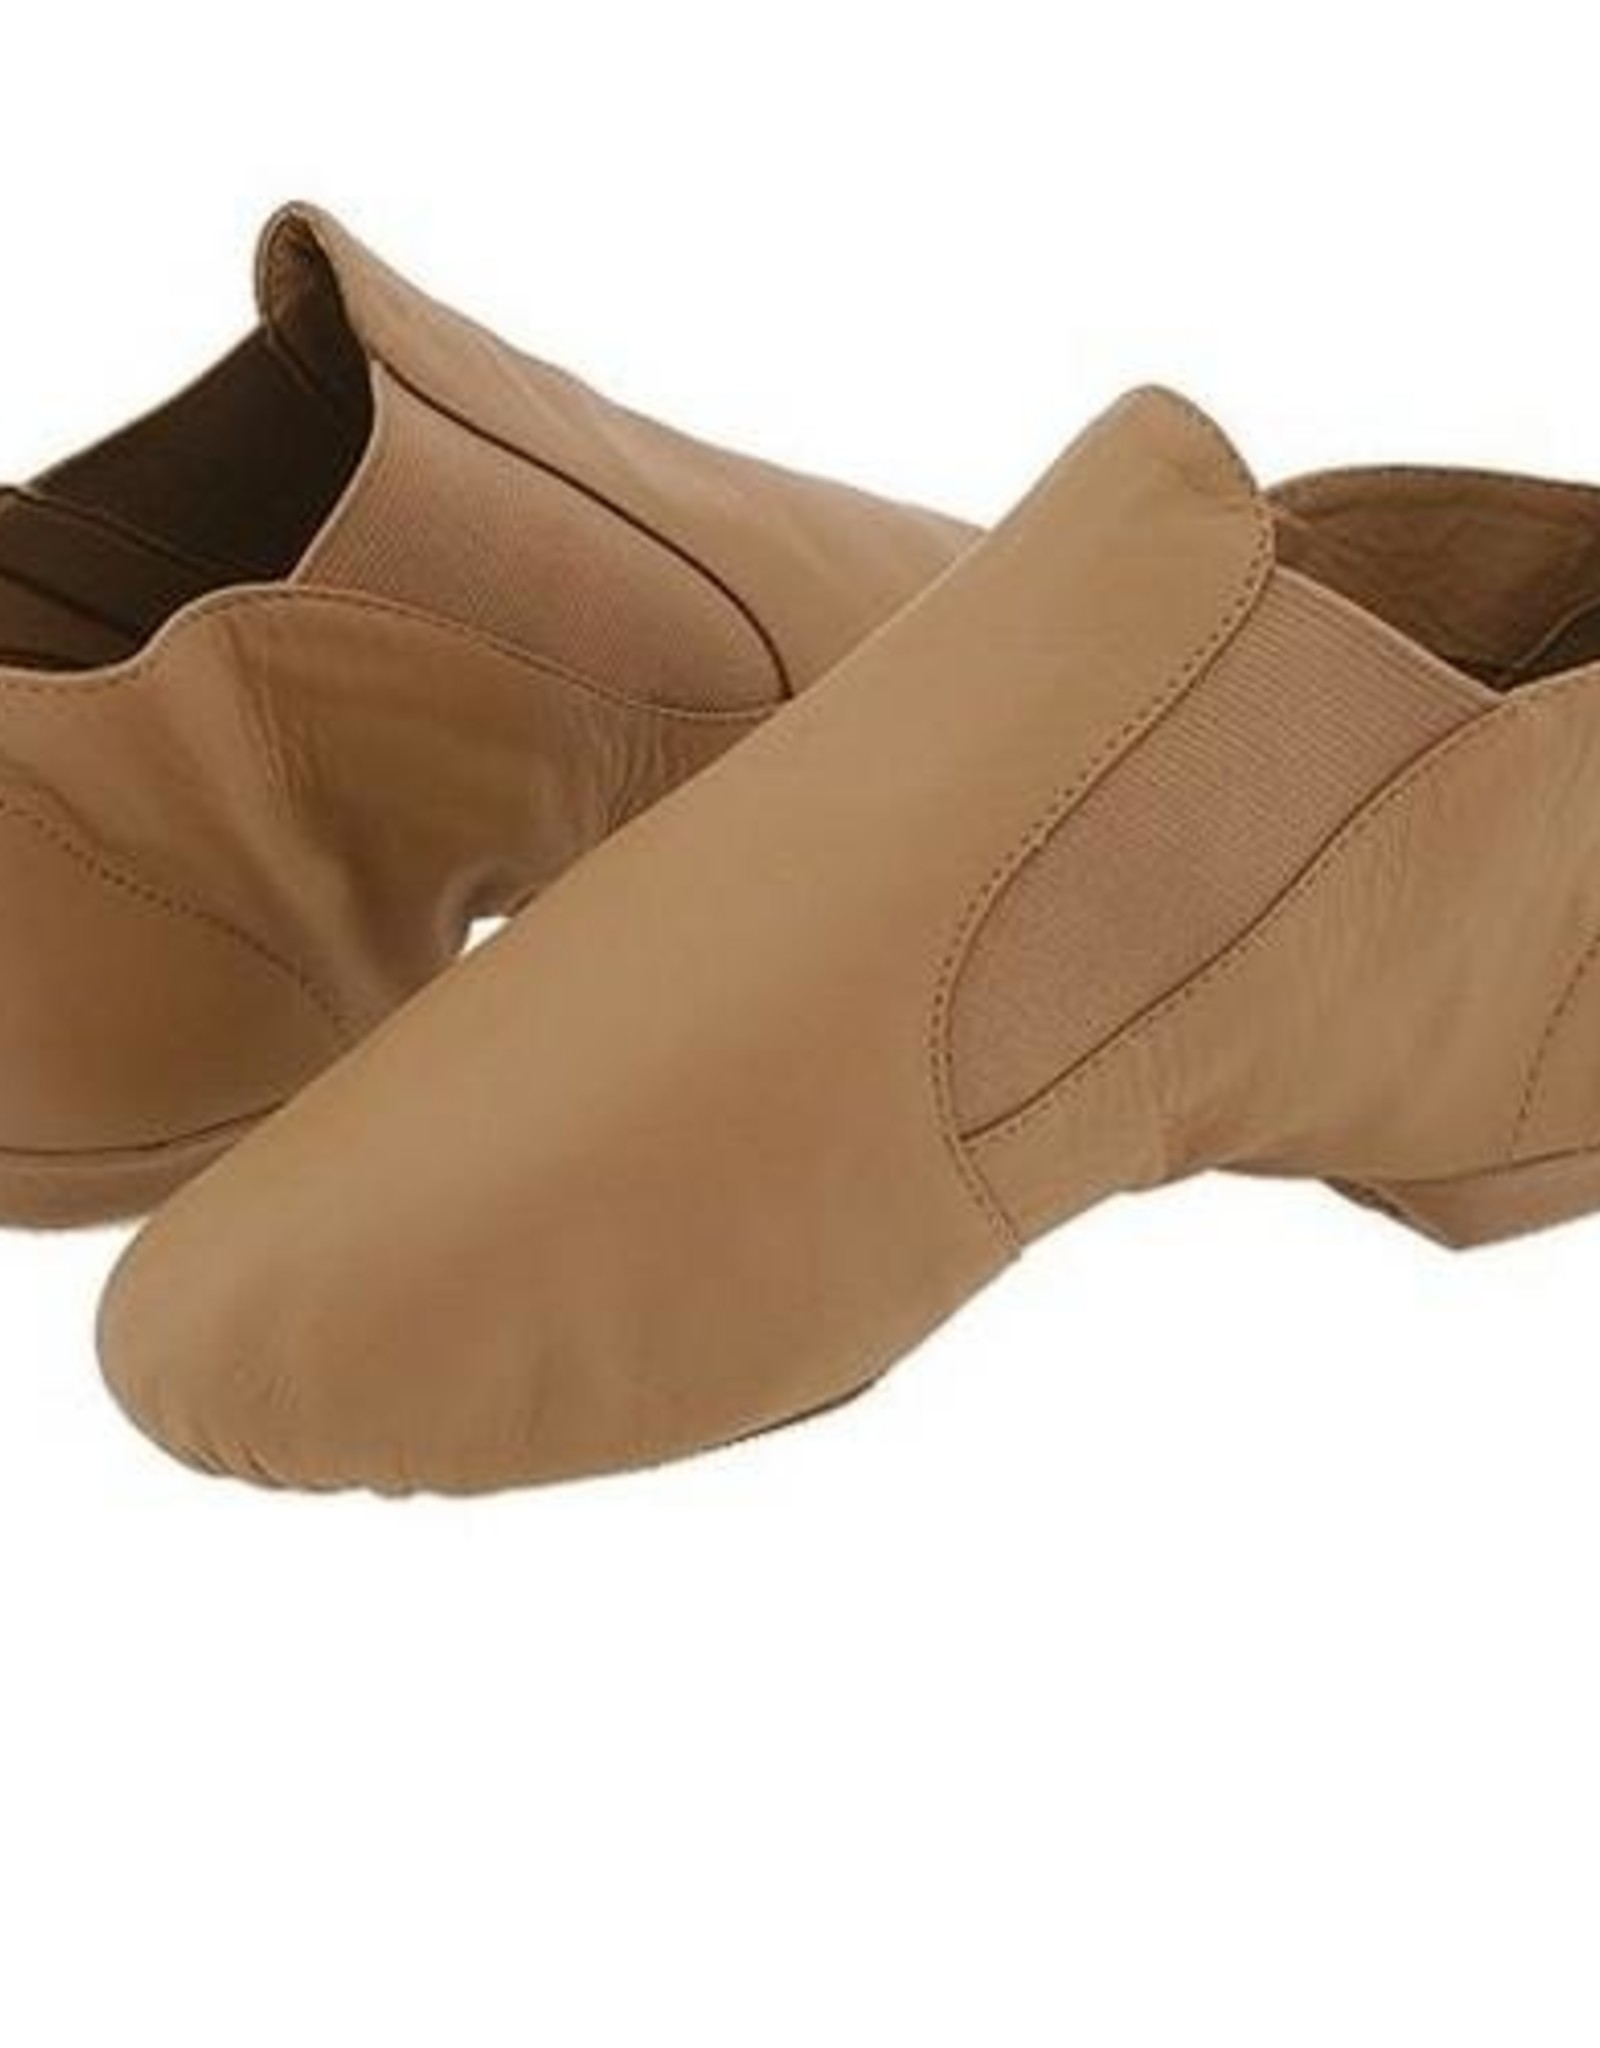 CAPEZIO STRETCH JAZZ ANKLE SHOES (CG15)